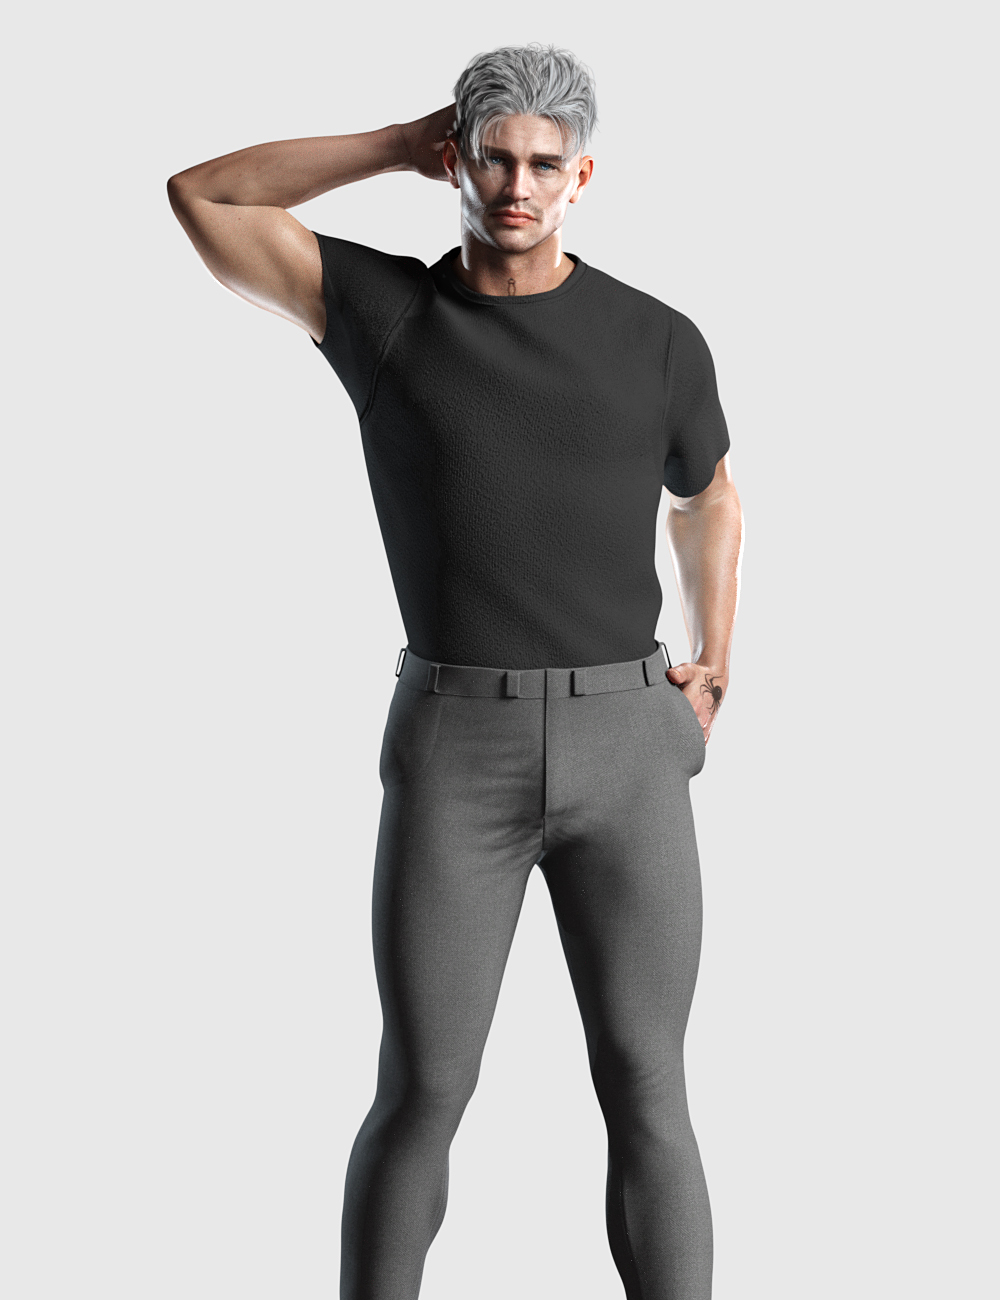 dForce Tucked Tee Outfit for Genesis 8 and 8.1 Males by: Romeo, 3D Models by Daz 3D